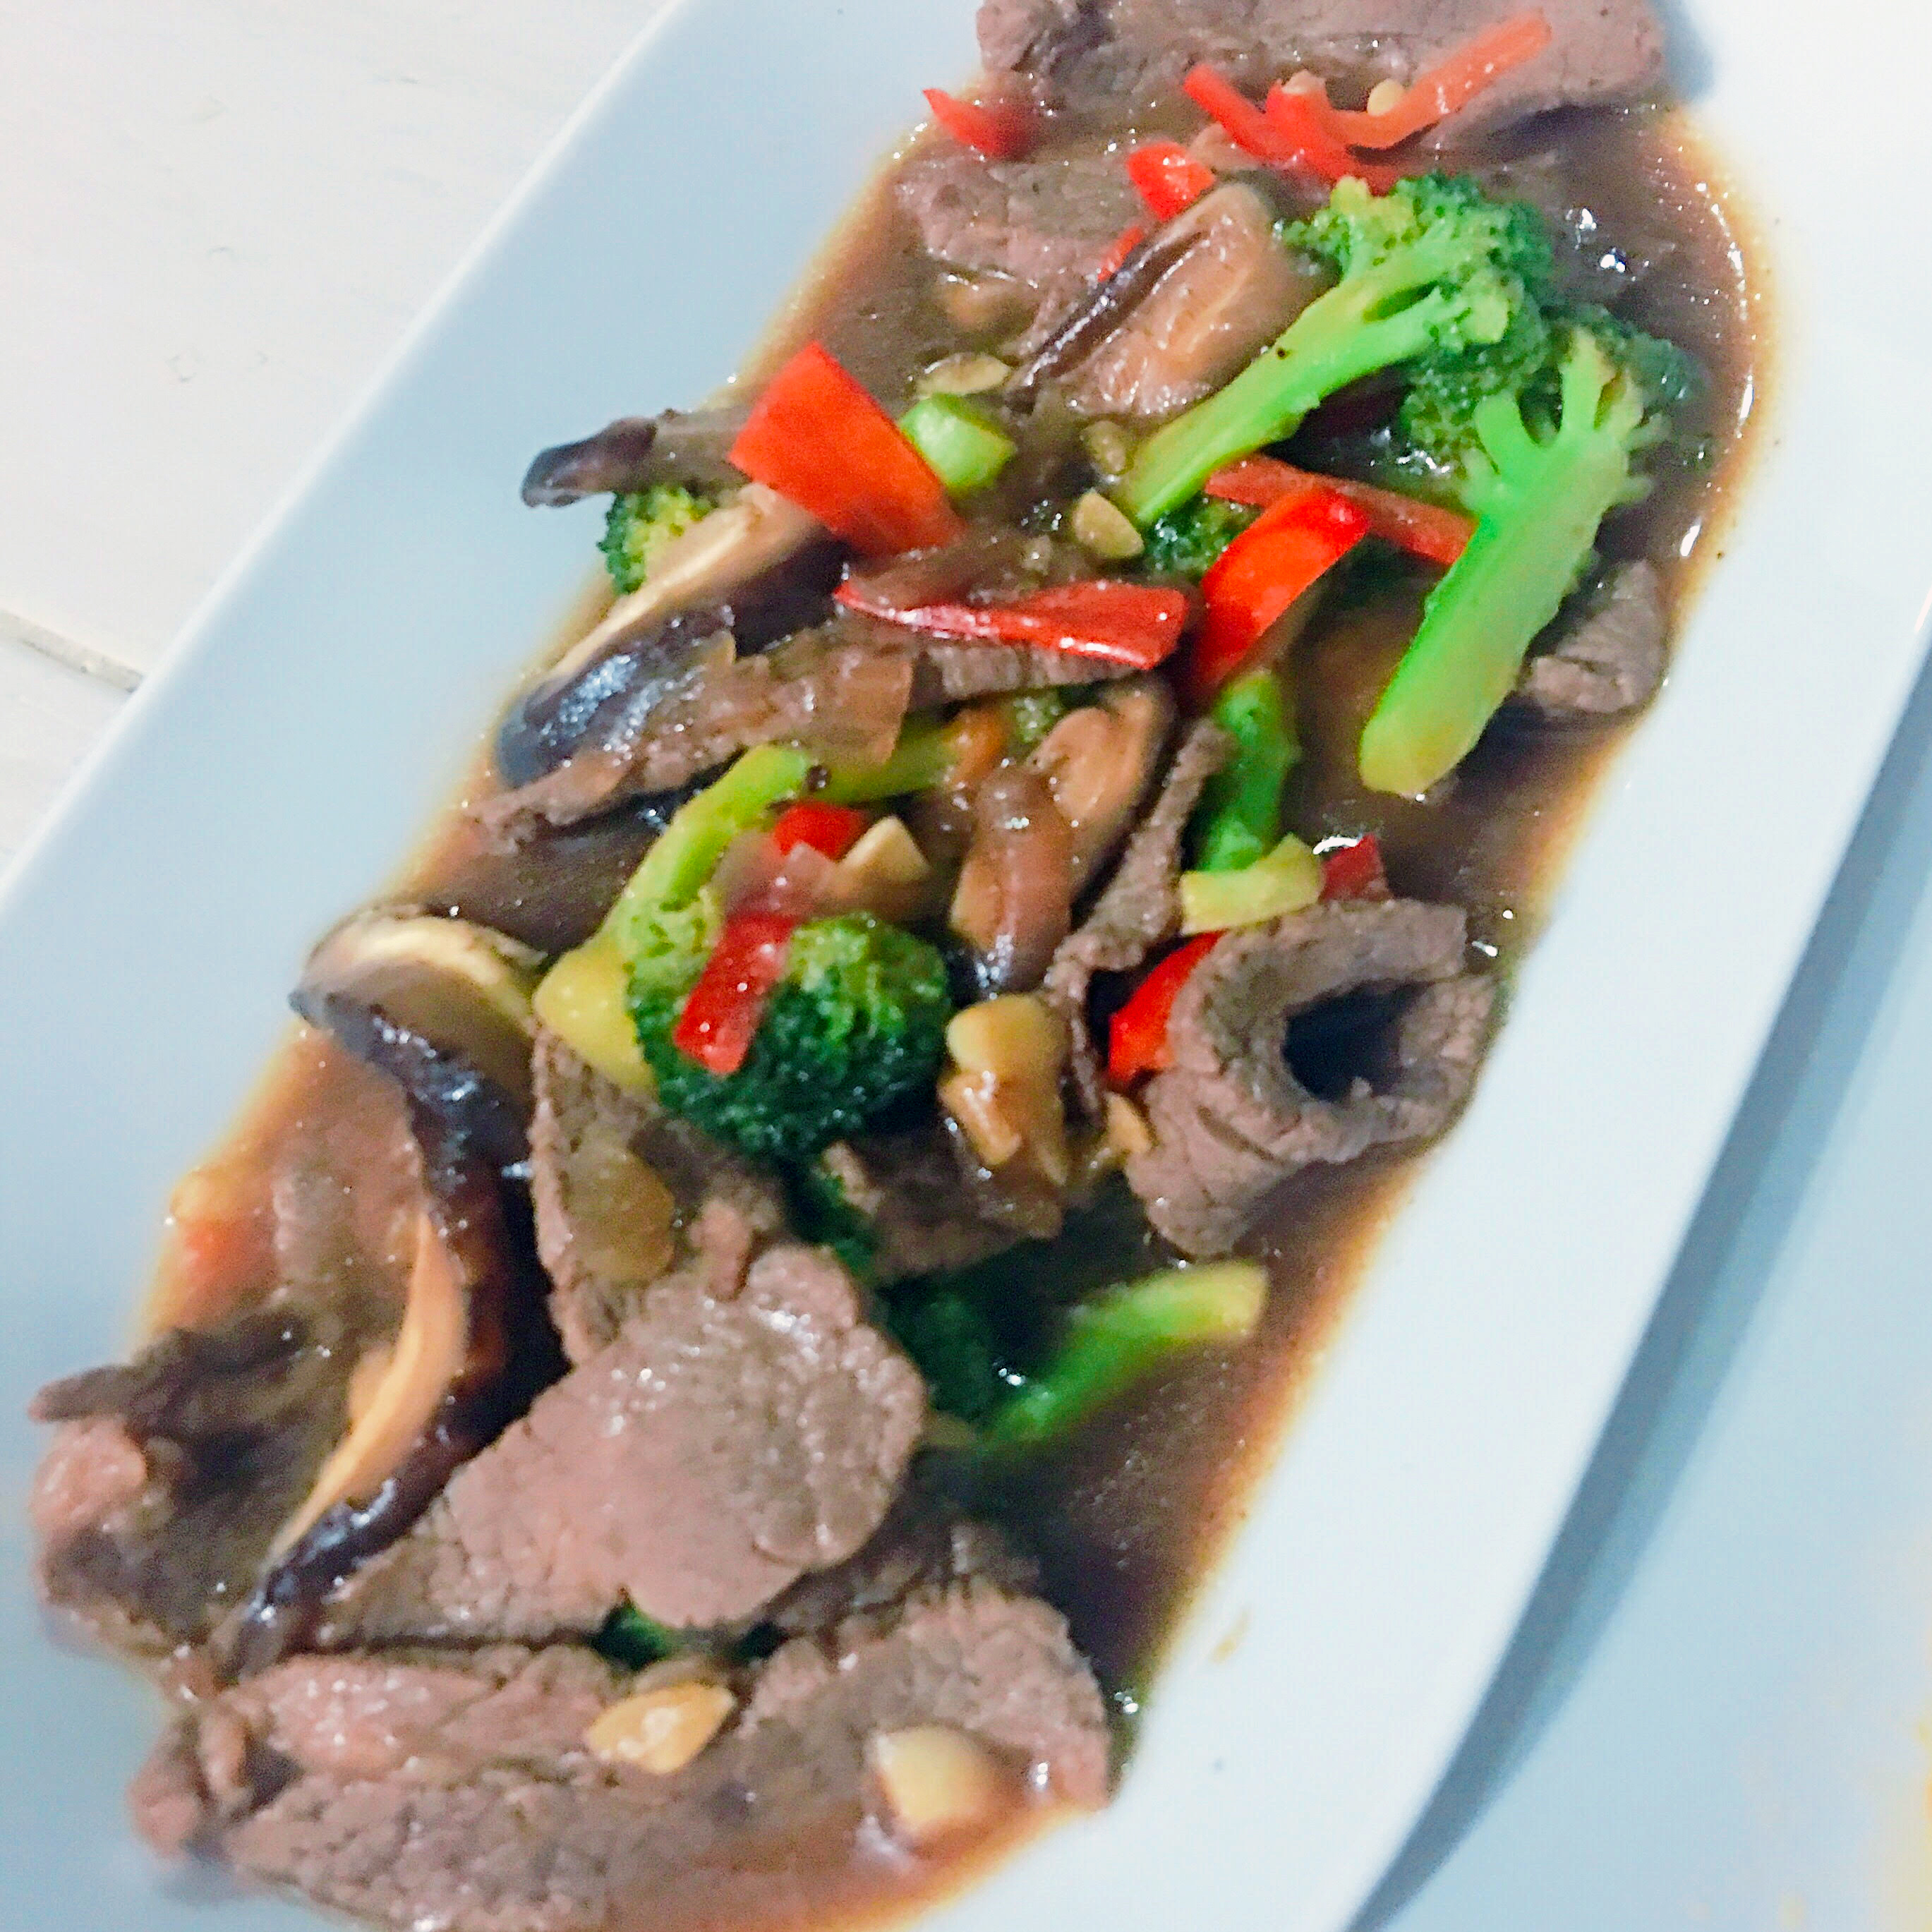 beef-brocolli-dish-by-ili